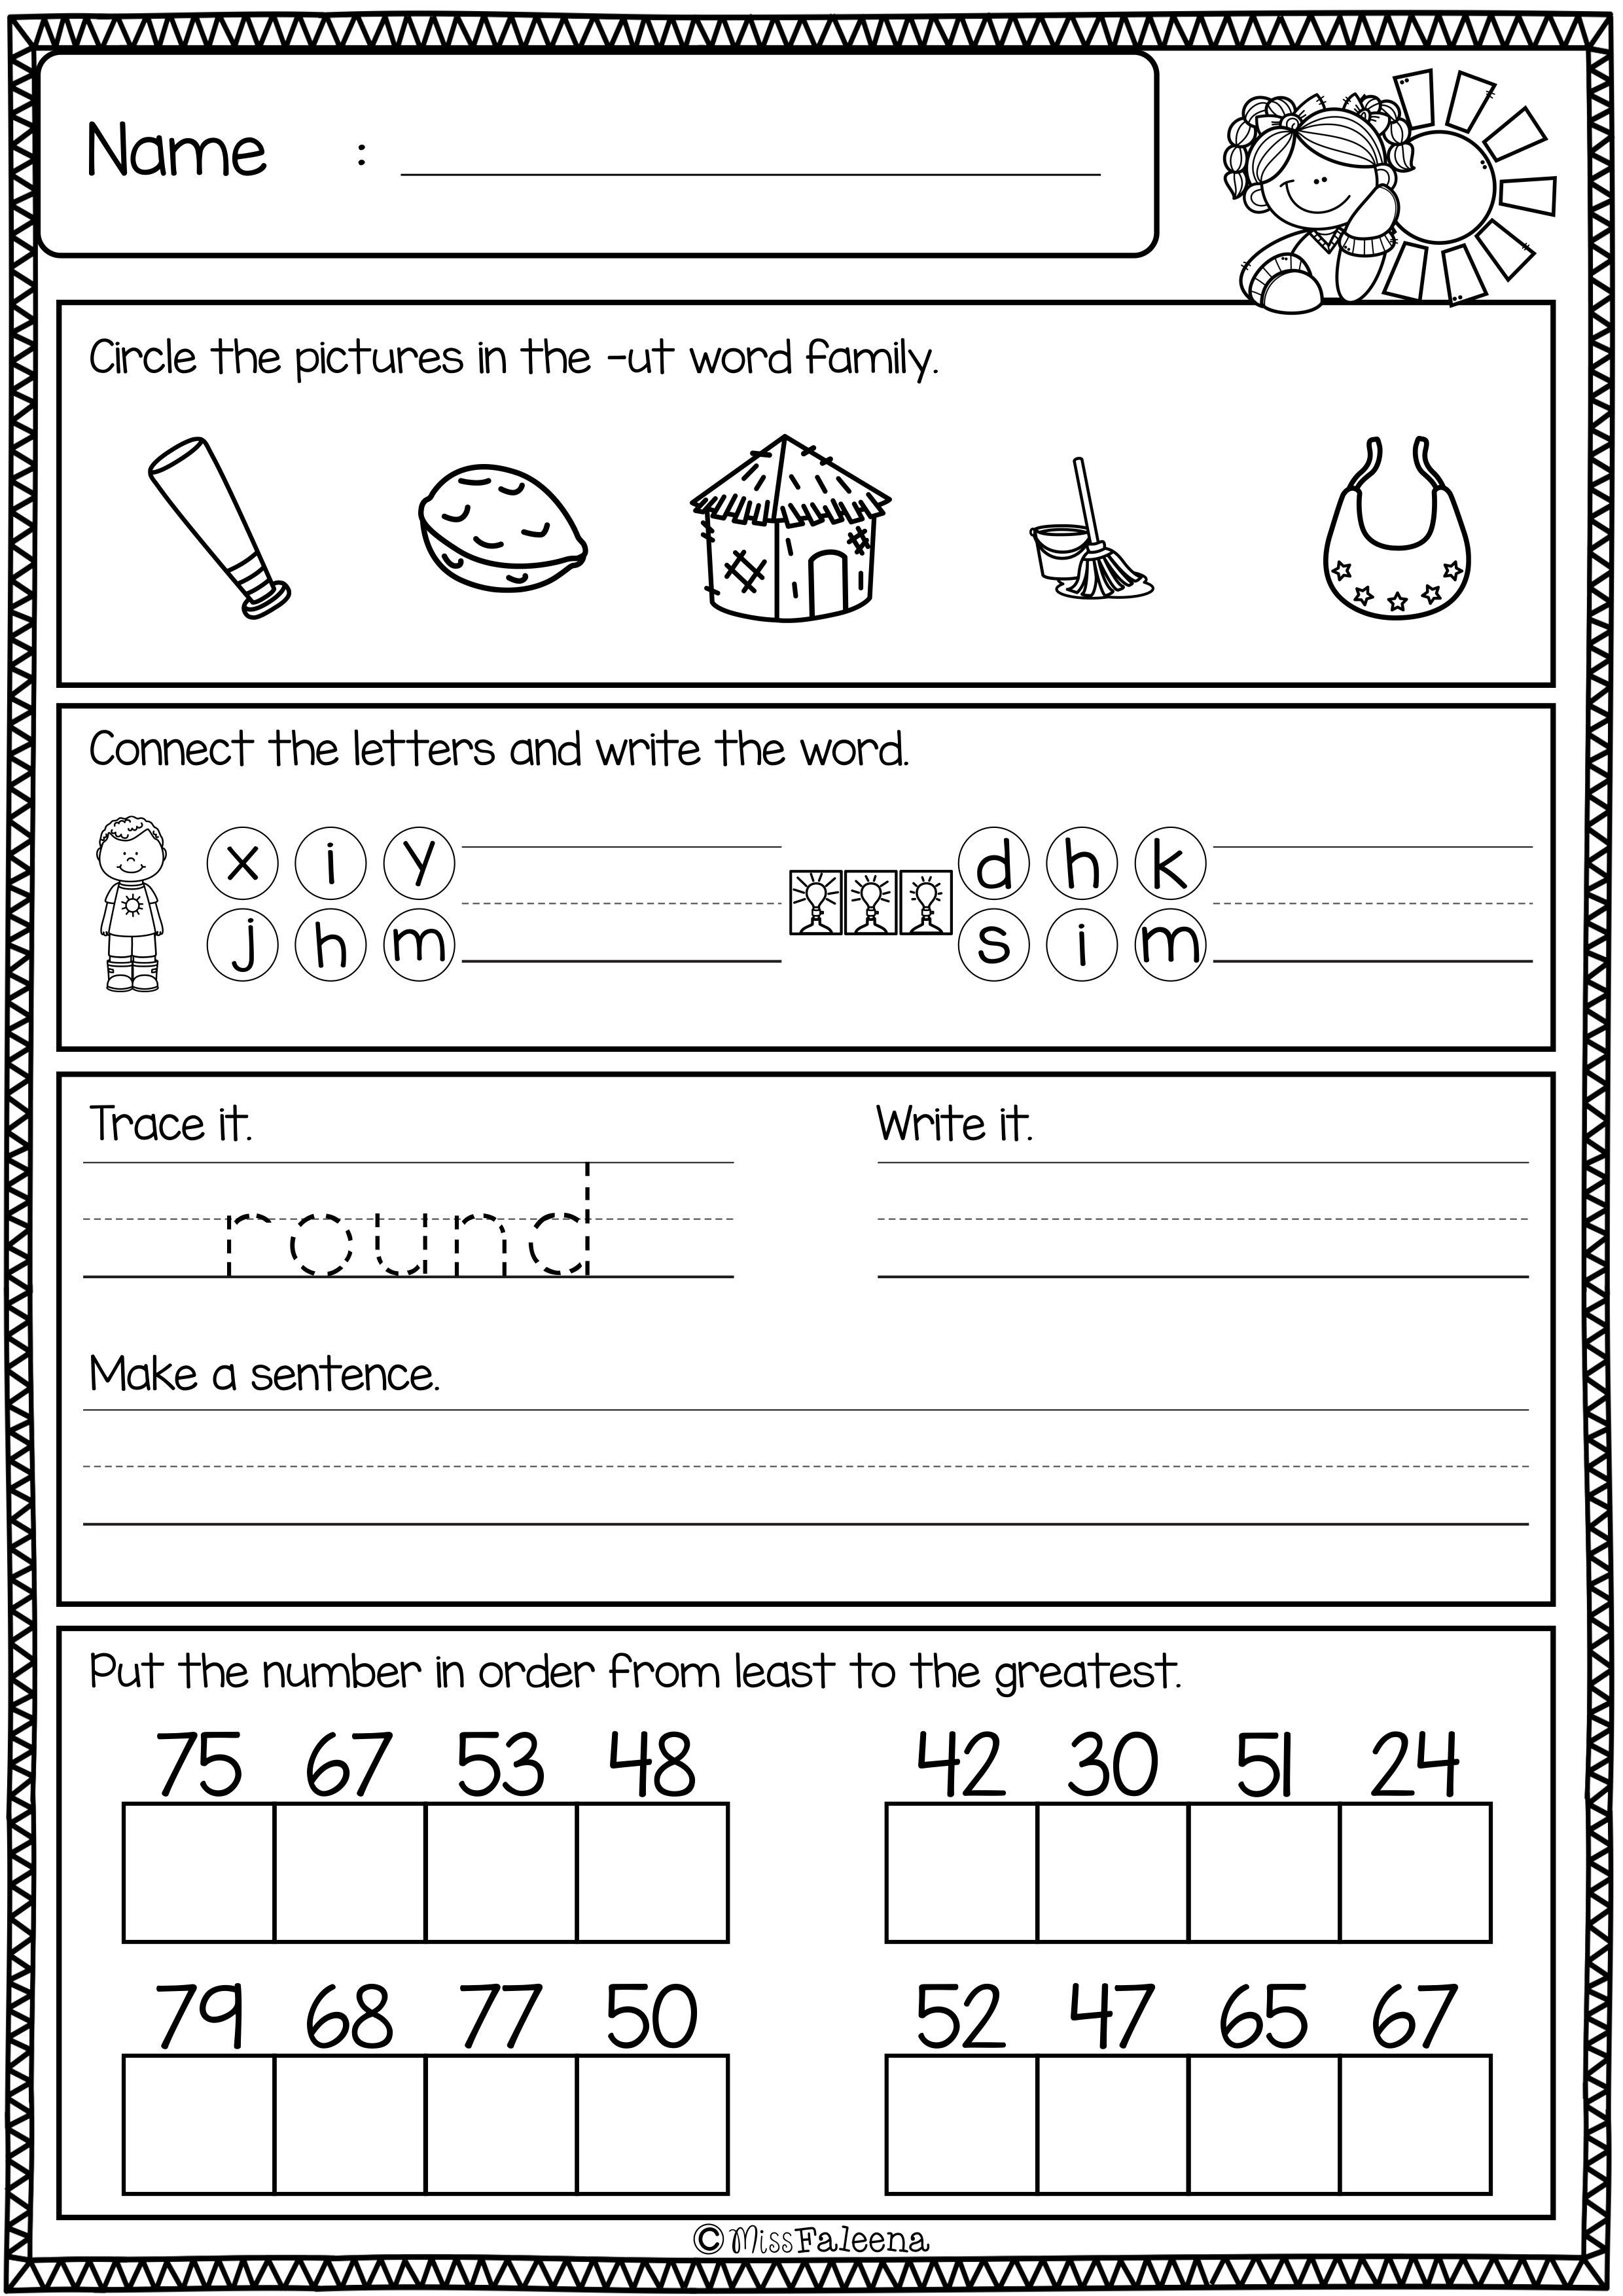 hight resolution of First Grade Morning Work (Set 2) (With images)   Kids math worksheets